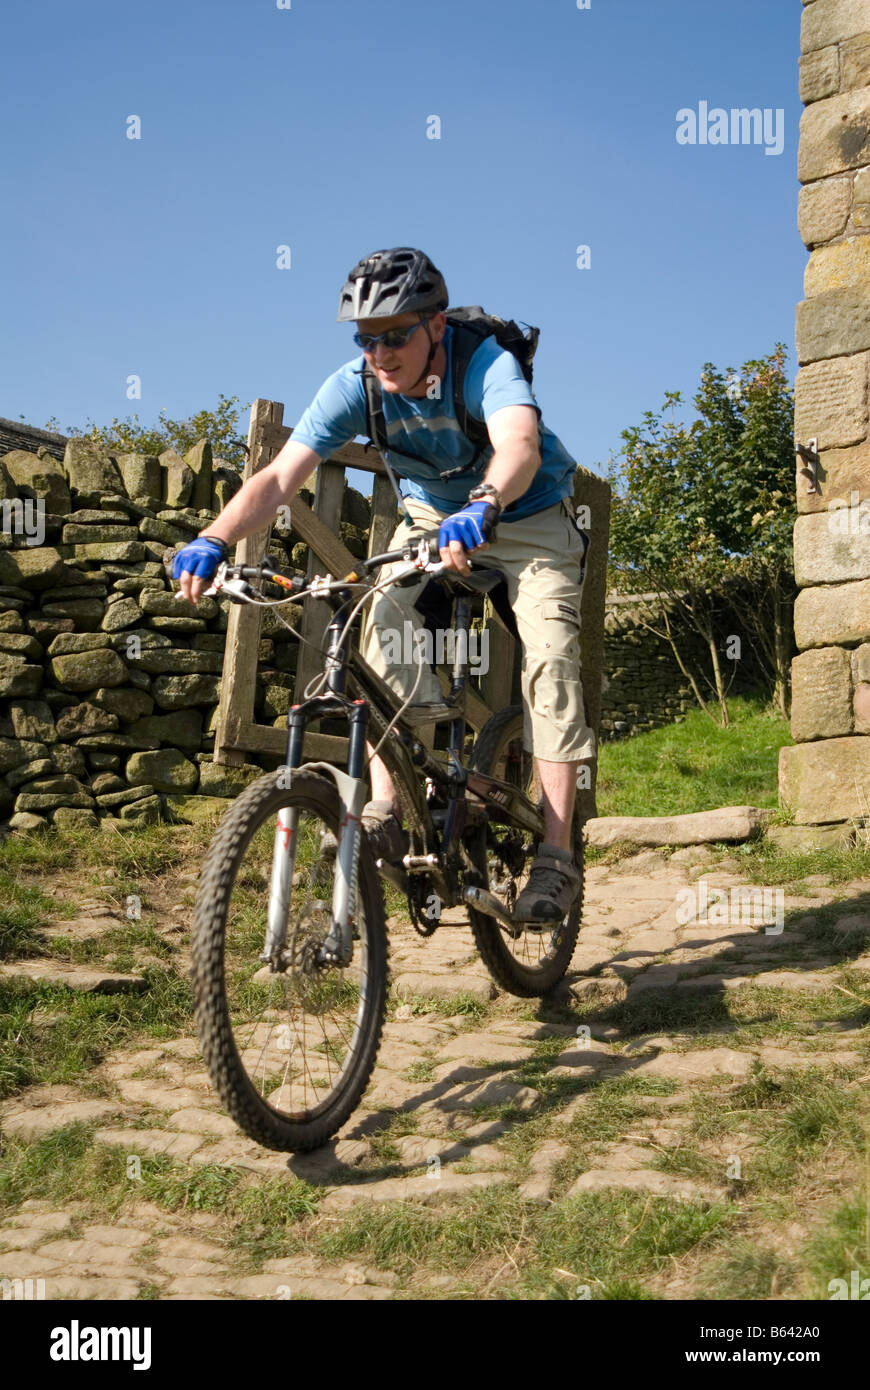 Mountain biking in the Peak District National Park Derbyshire visit tourist tourism Stock Photo